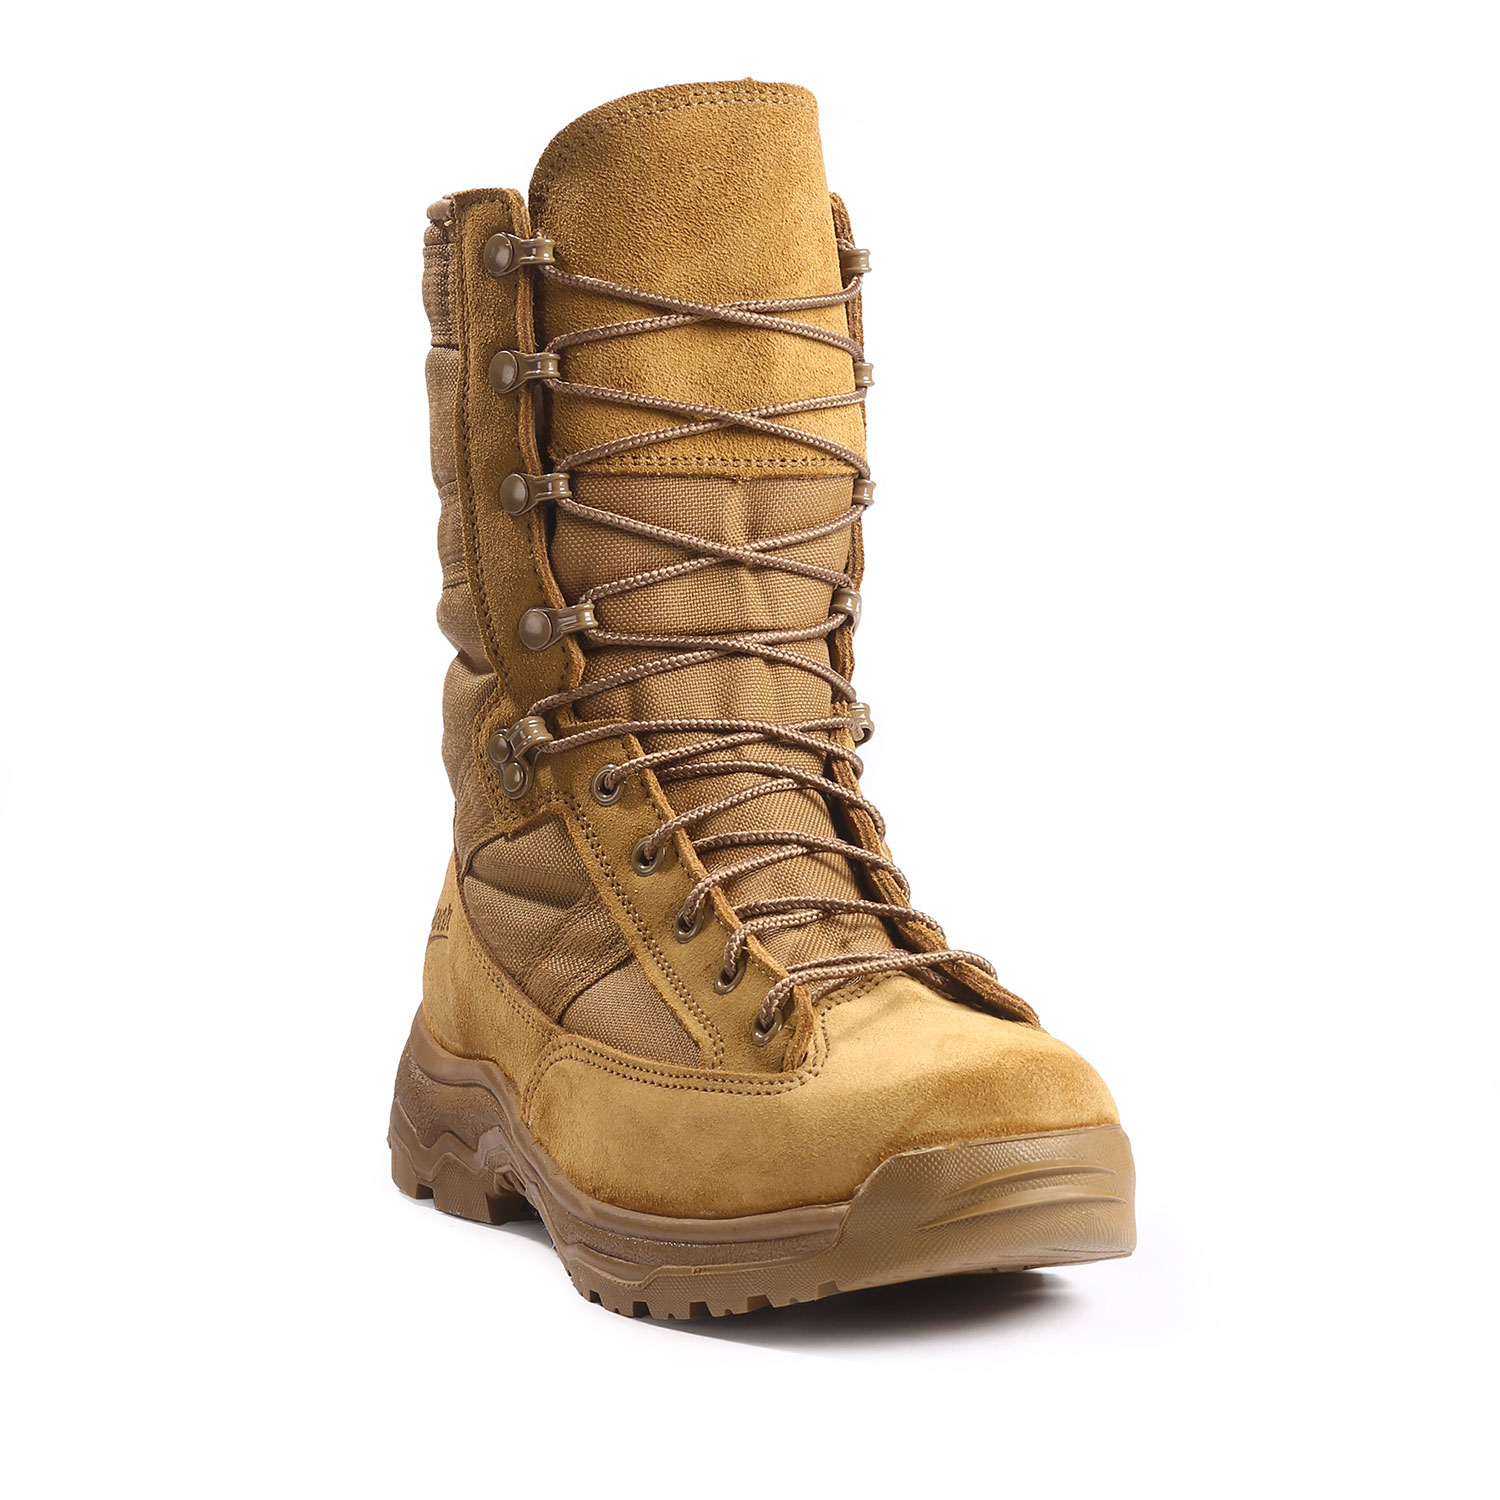 "Danner Reckoning Coyote Hot 8"" Duty Boot"